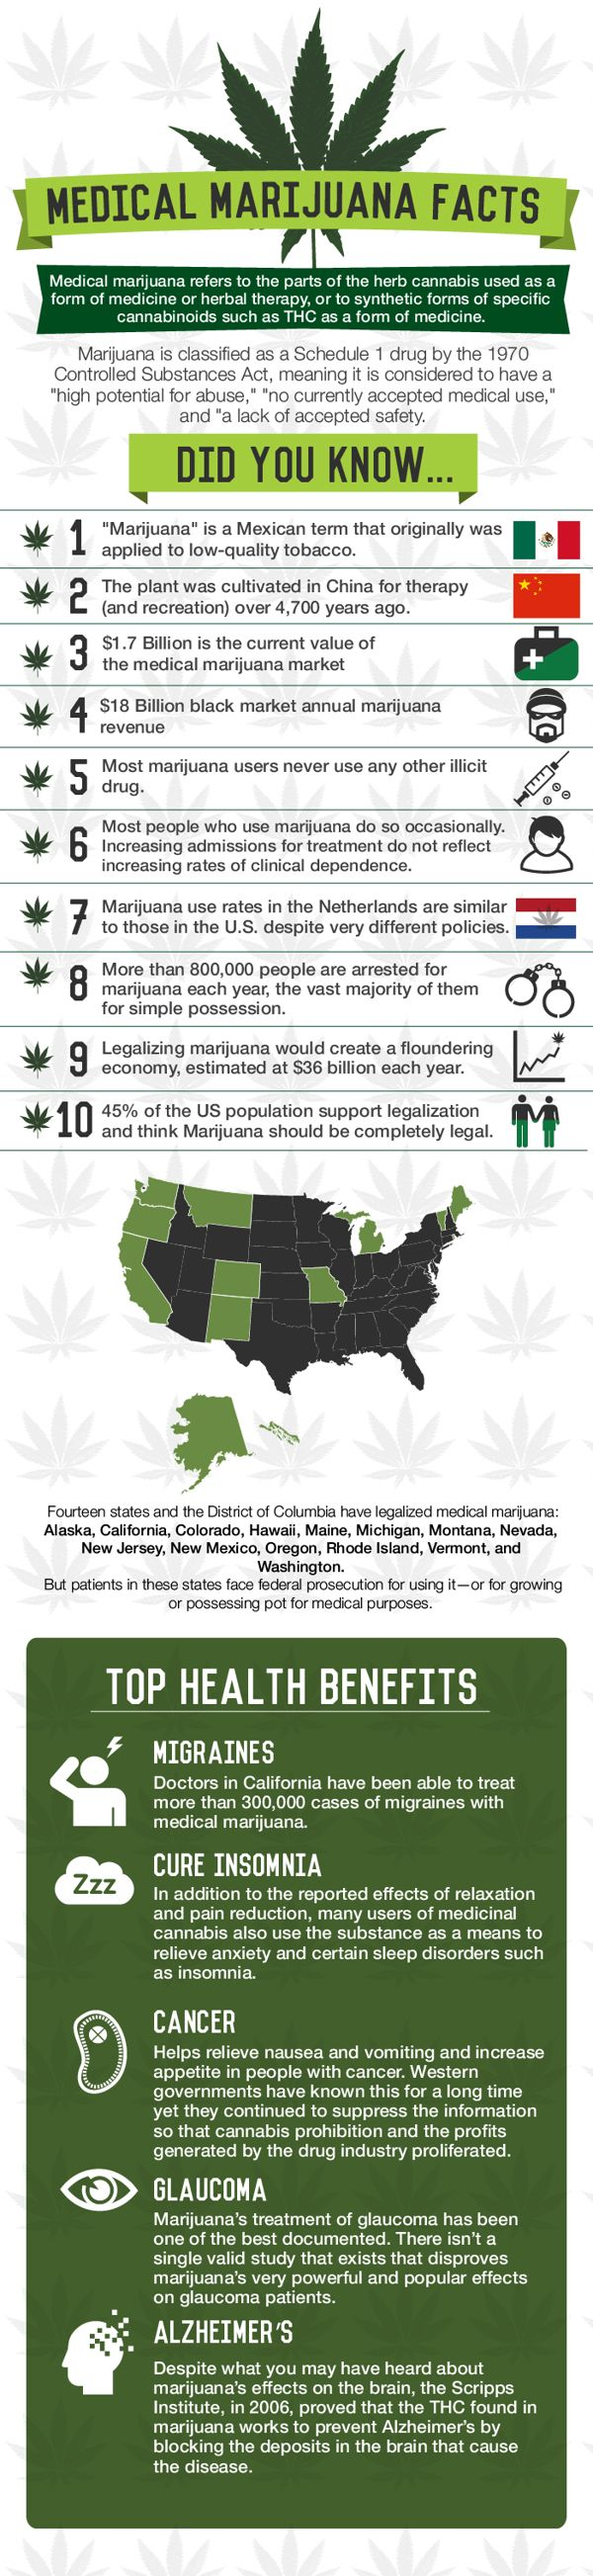 The facts on Medical Marijuana.